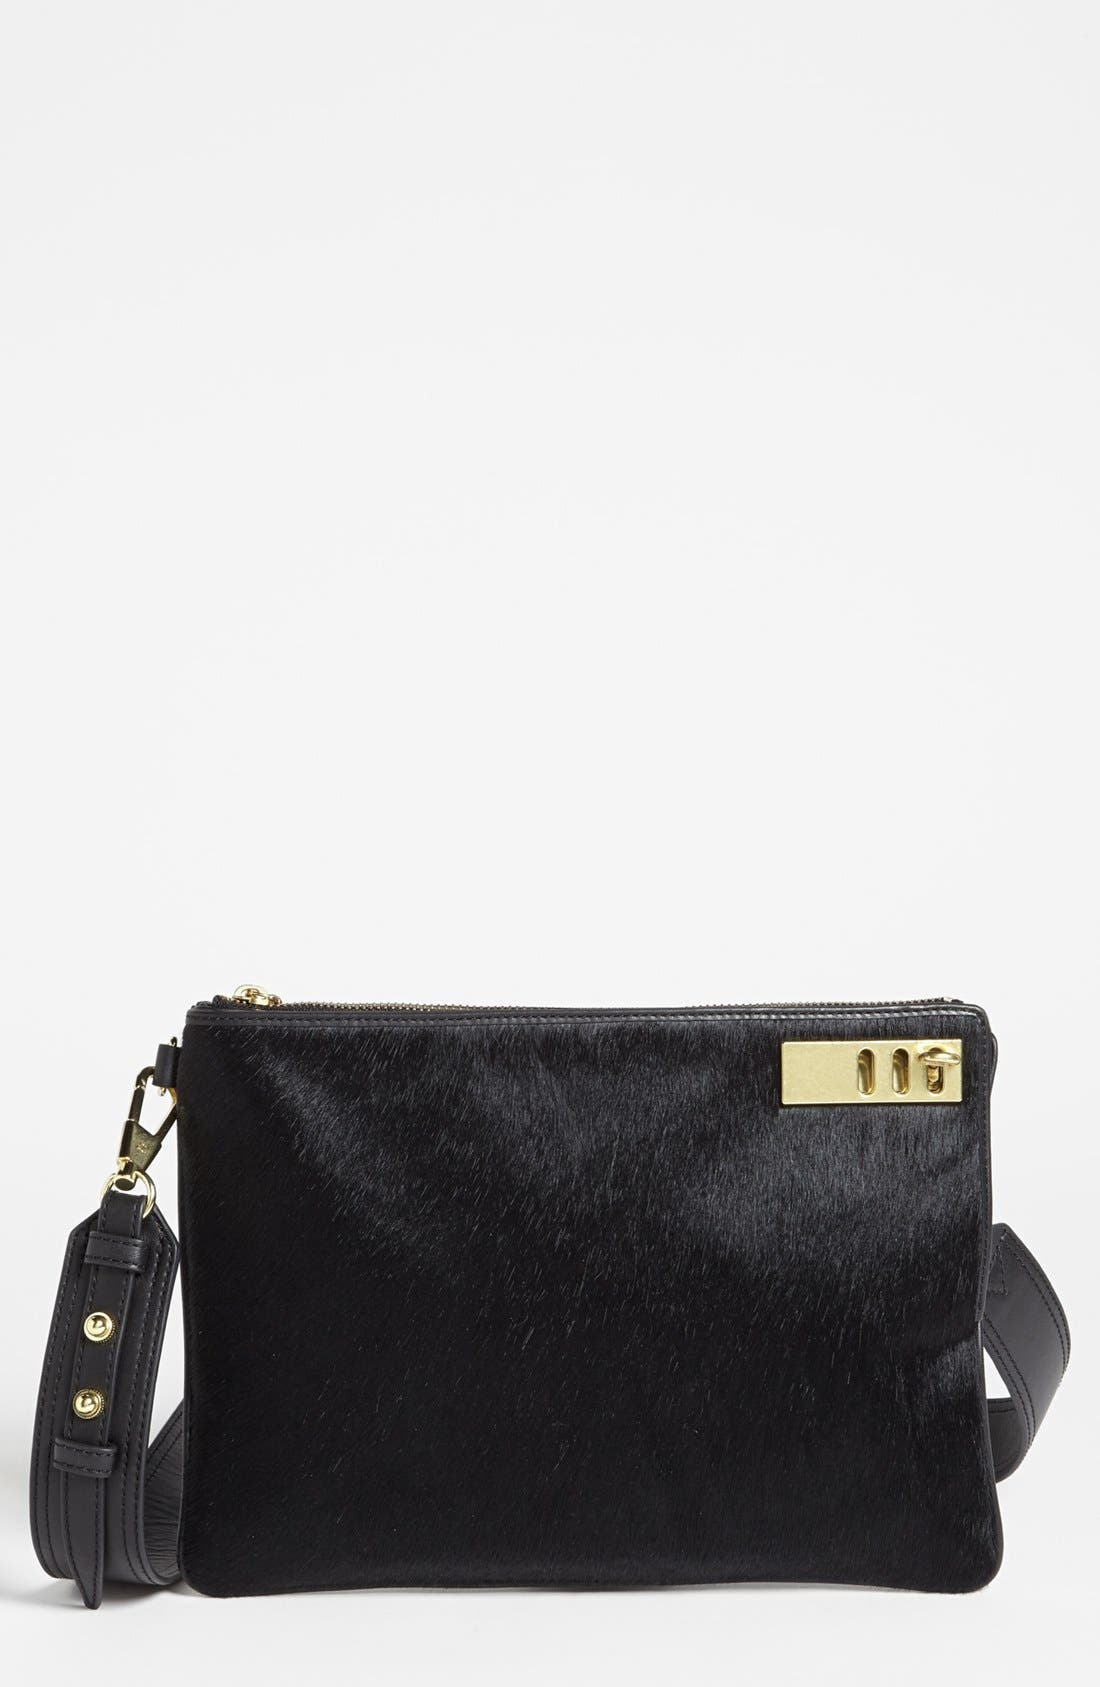 Alternate Image 1 Selected - 3.1 Phillip Lim 'Racer' Calf Hair & Leather Clutch